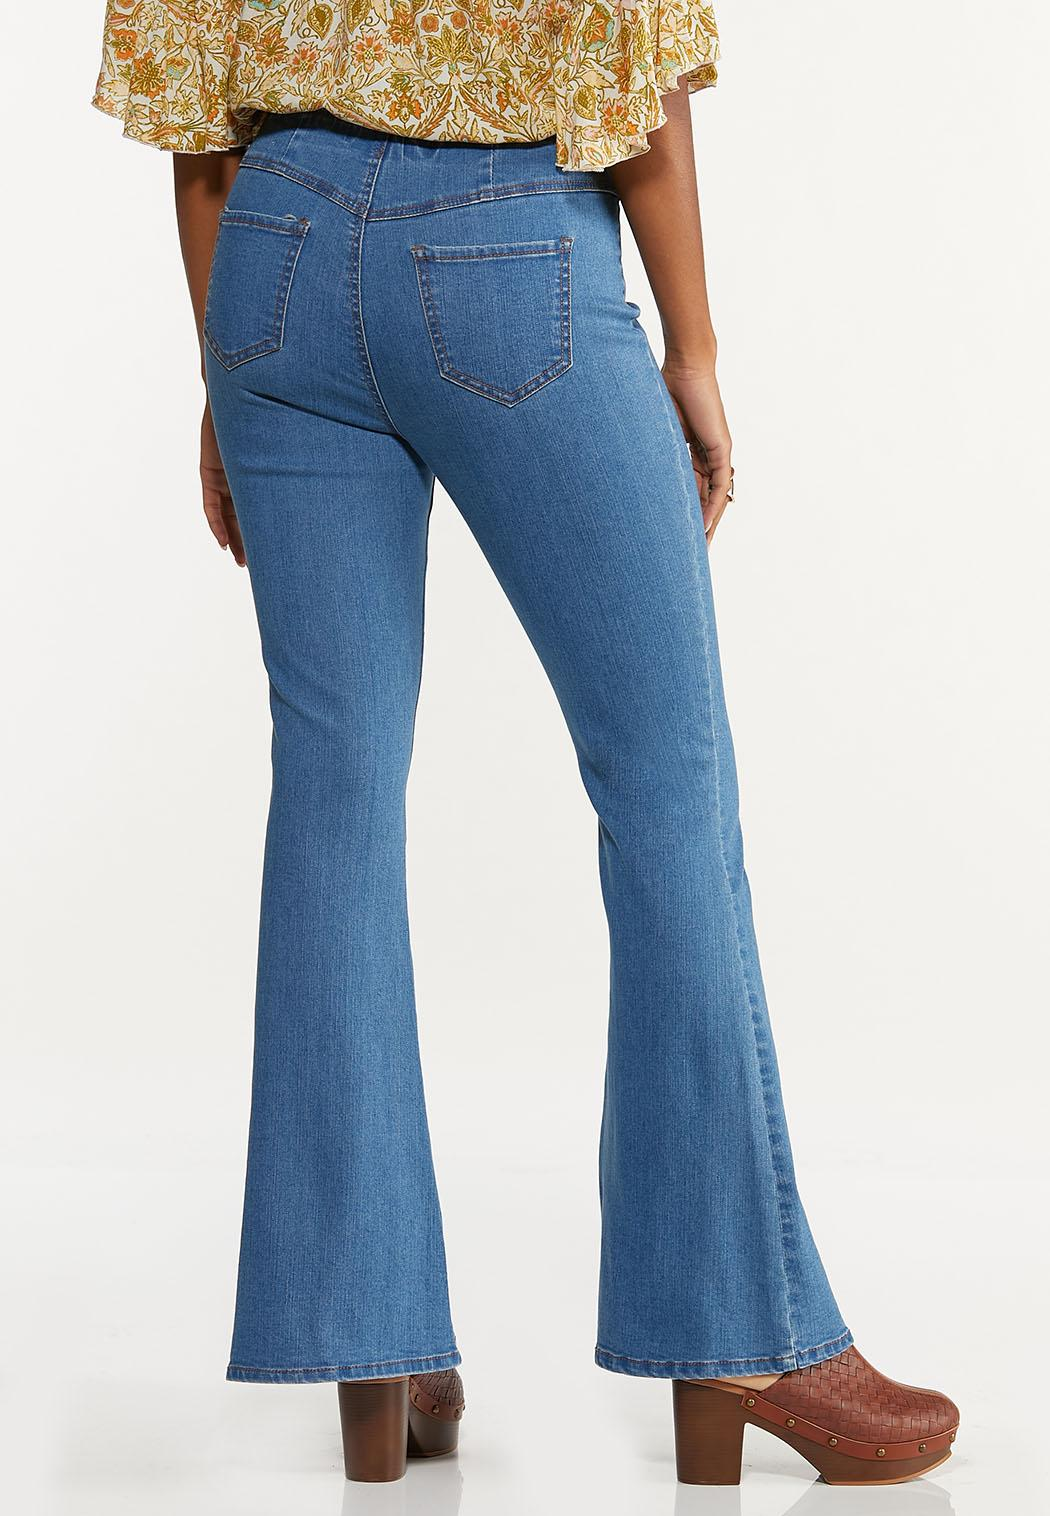 Pull-On Flare Jeans (Item #44645544)